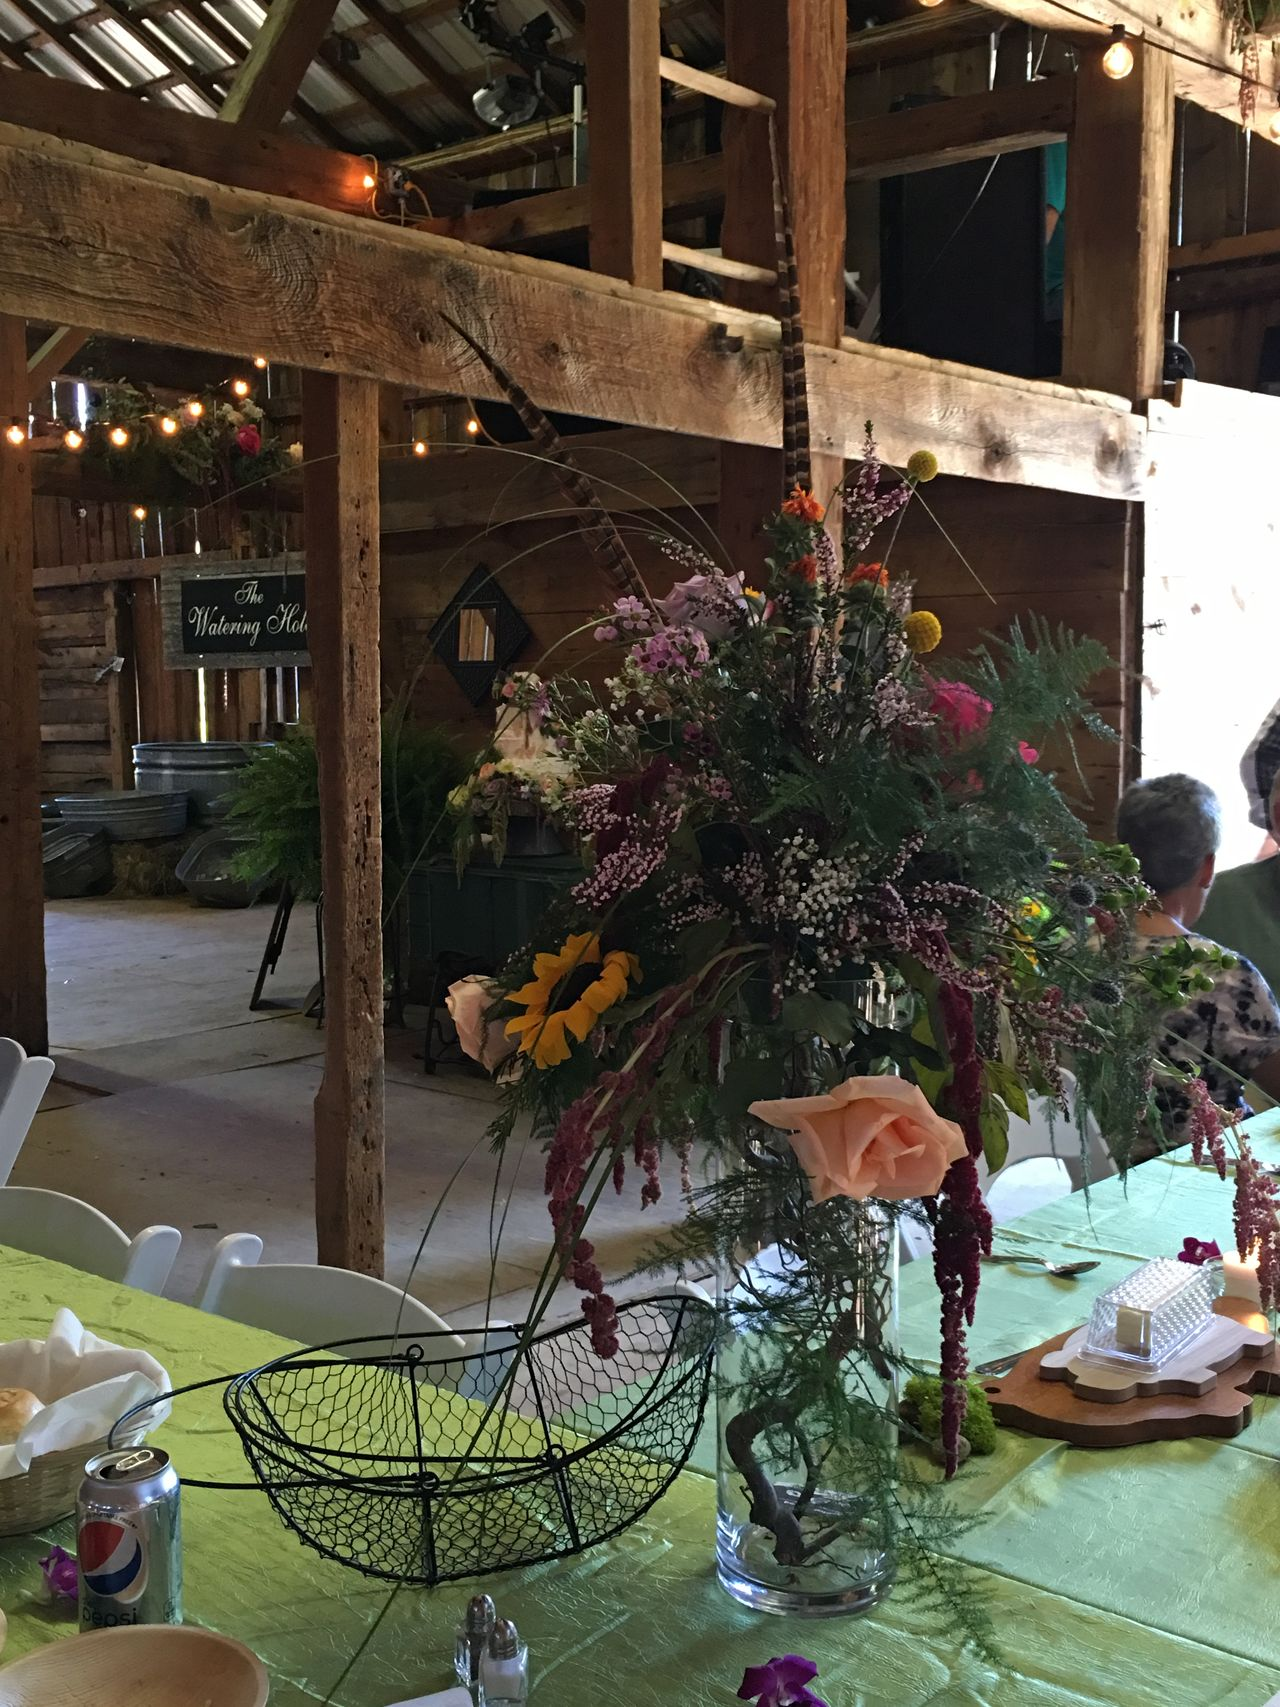 2016-09-03 INSIDE FLOWER ARRANGEMENT